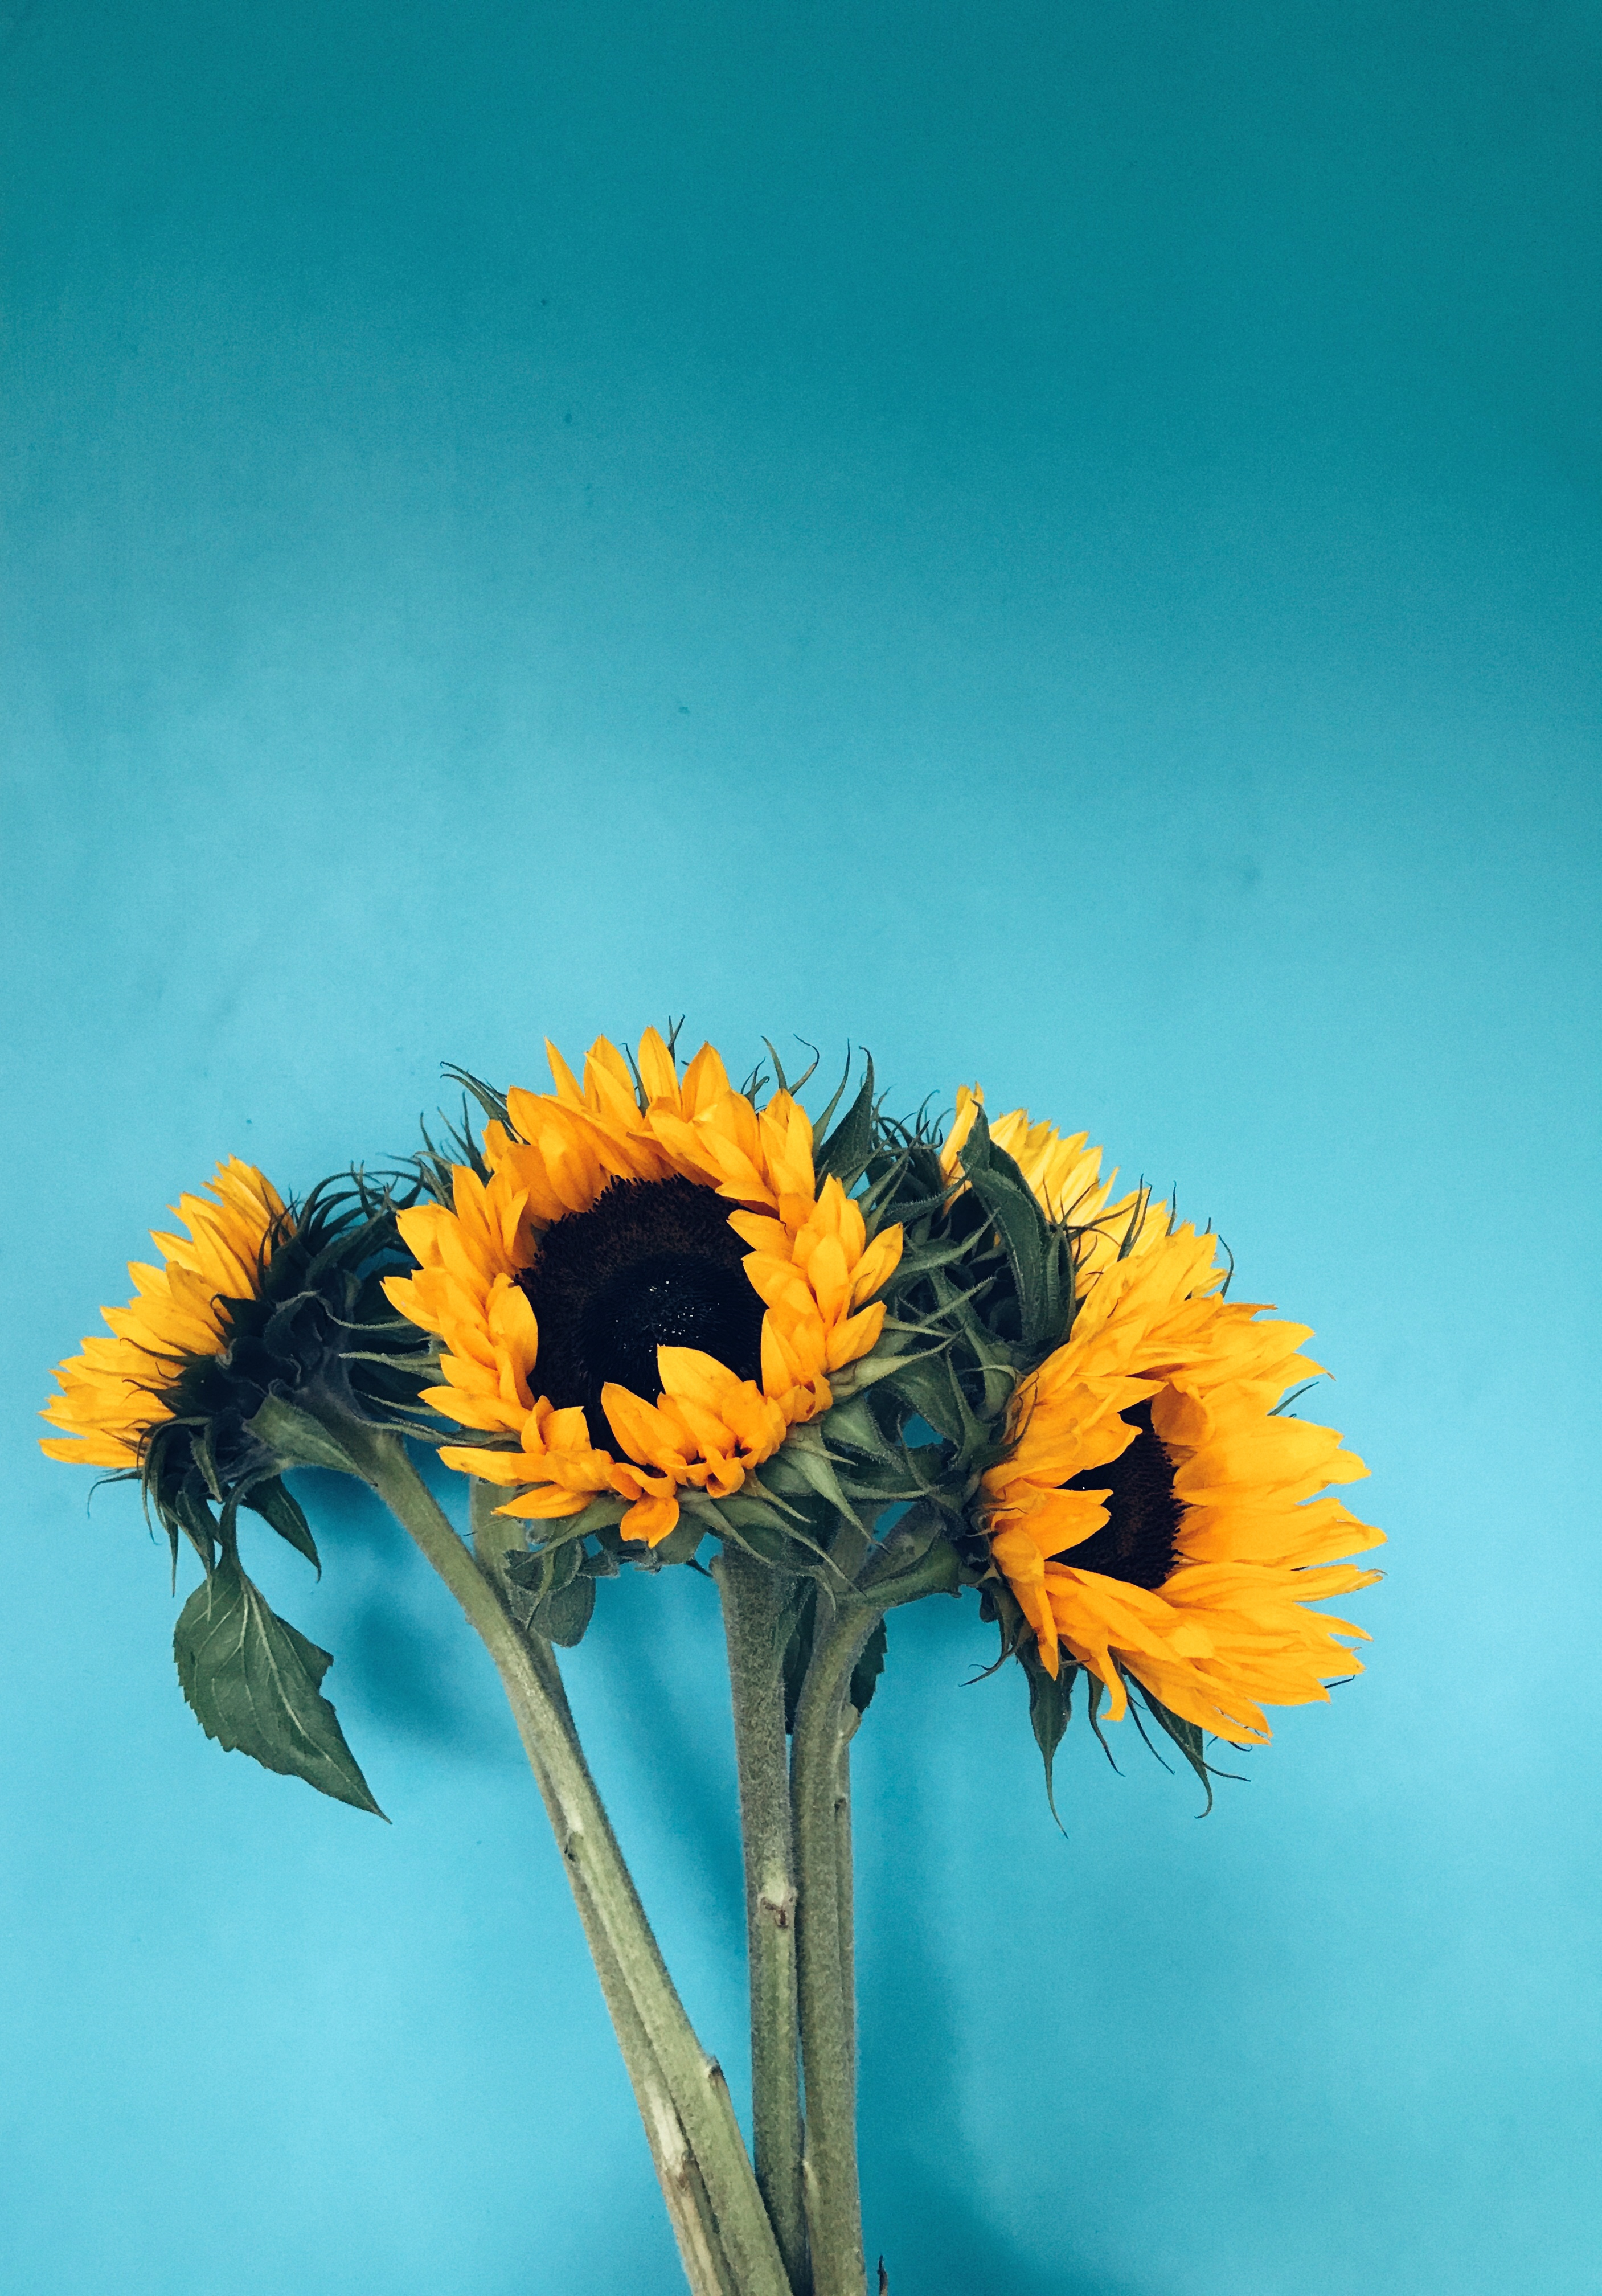 Four Sunflowers in Bloom on Teal Surface